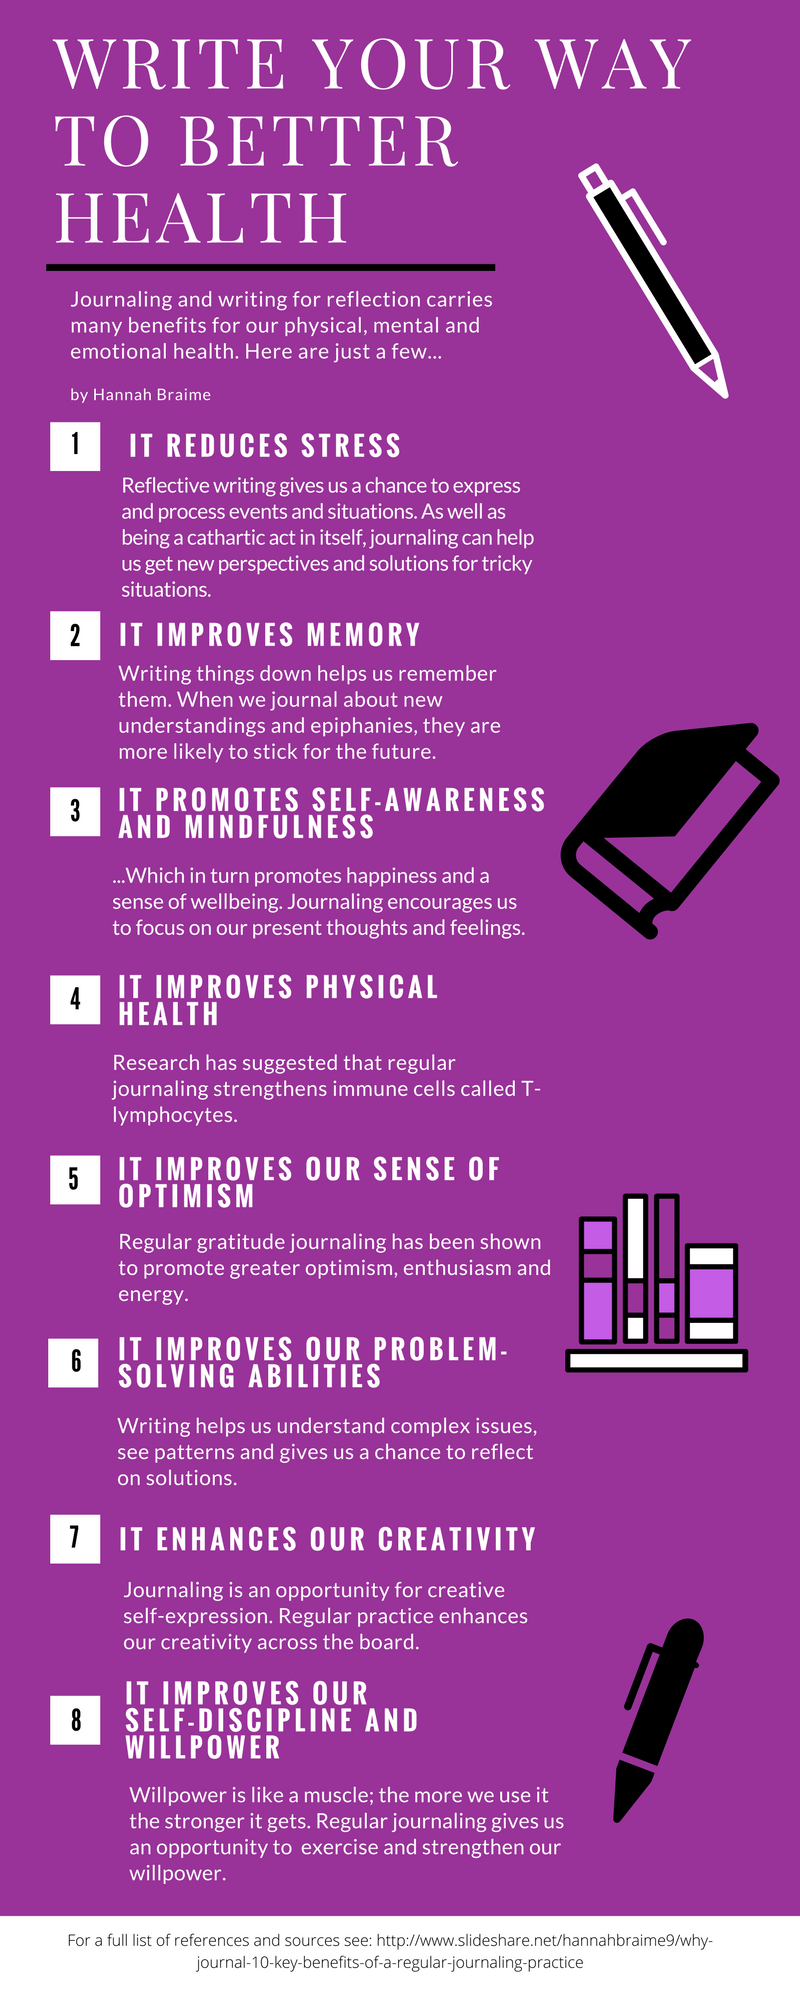 You probably know about the emotional benefits of writing, but did you know journaling can impact your physical health too? Click the image to discover more >>> | www.becomingwhoyouare.net